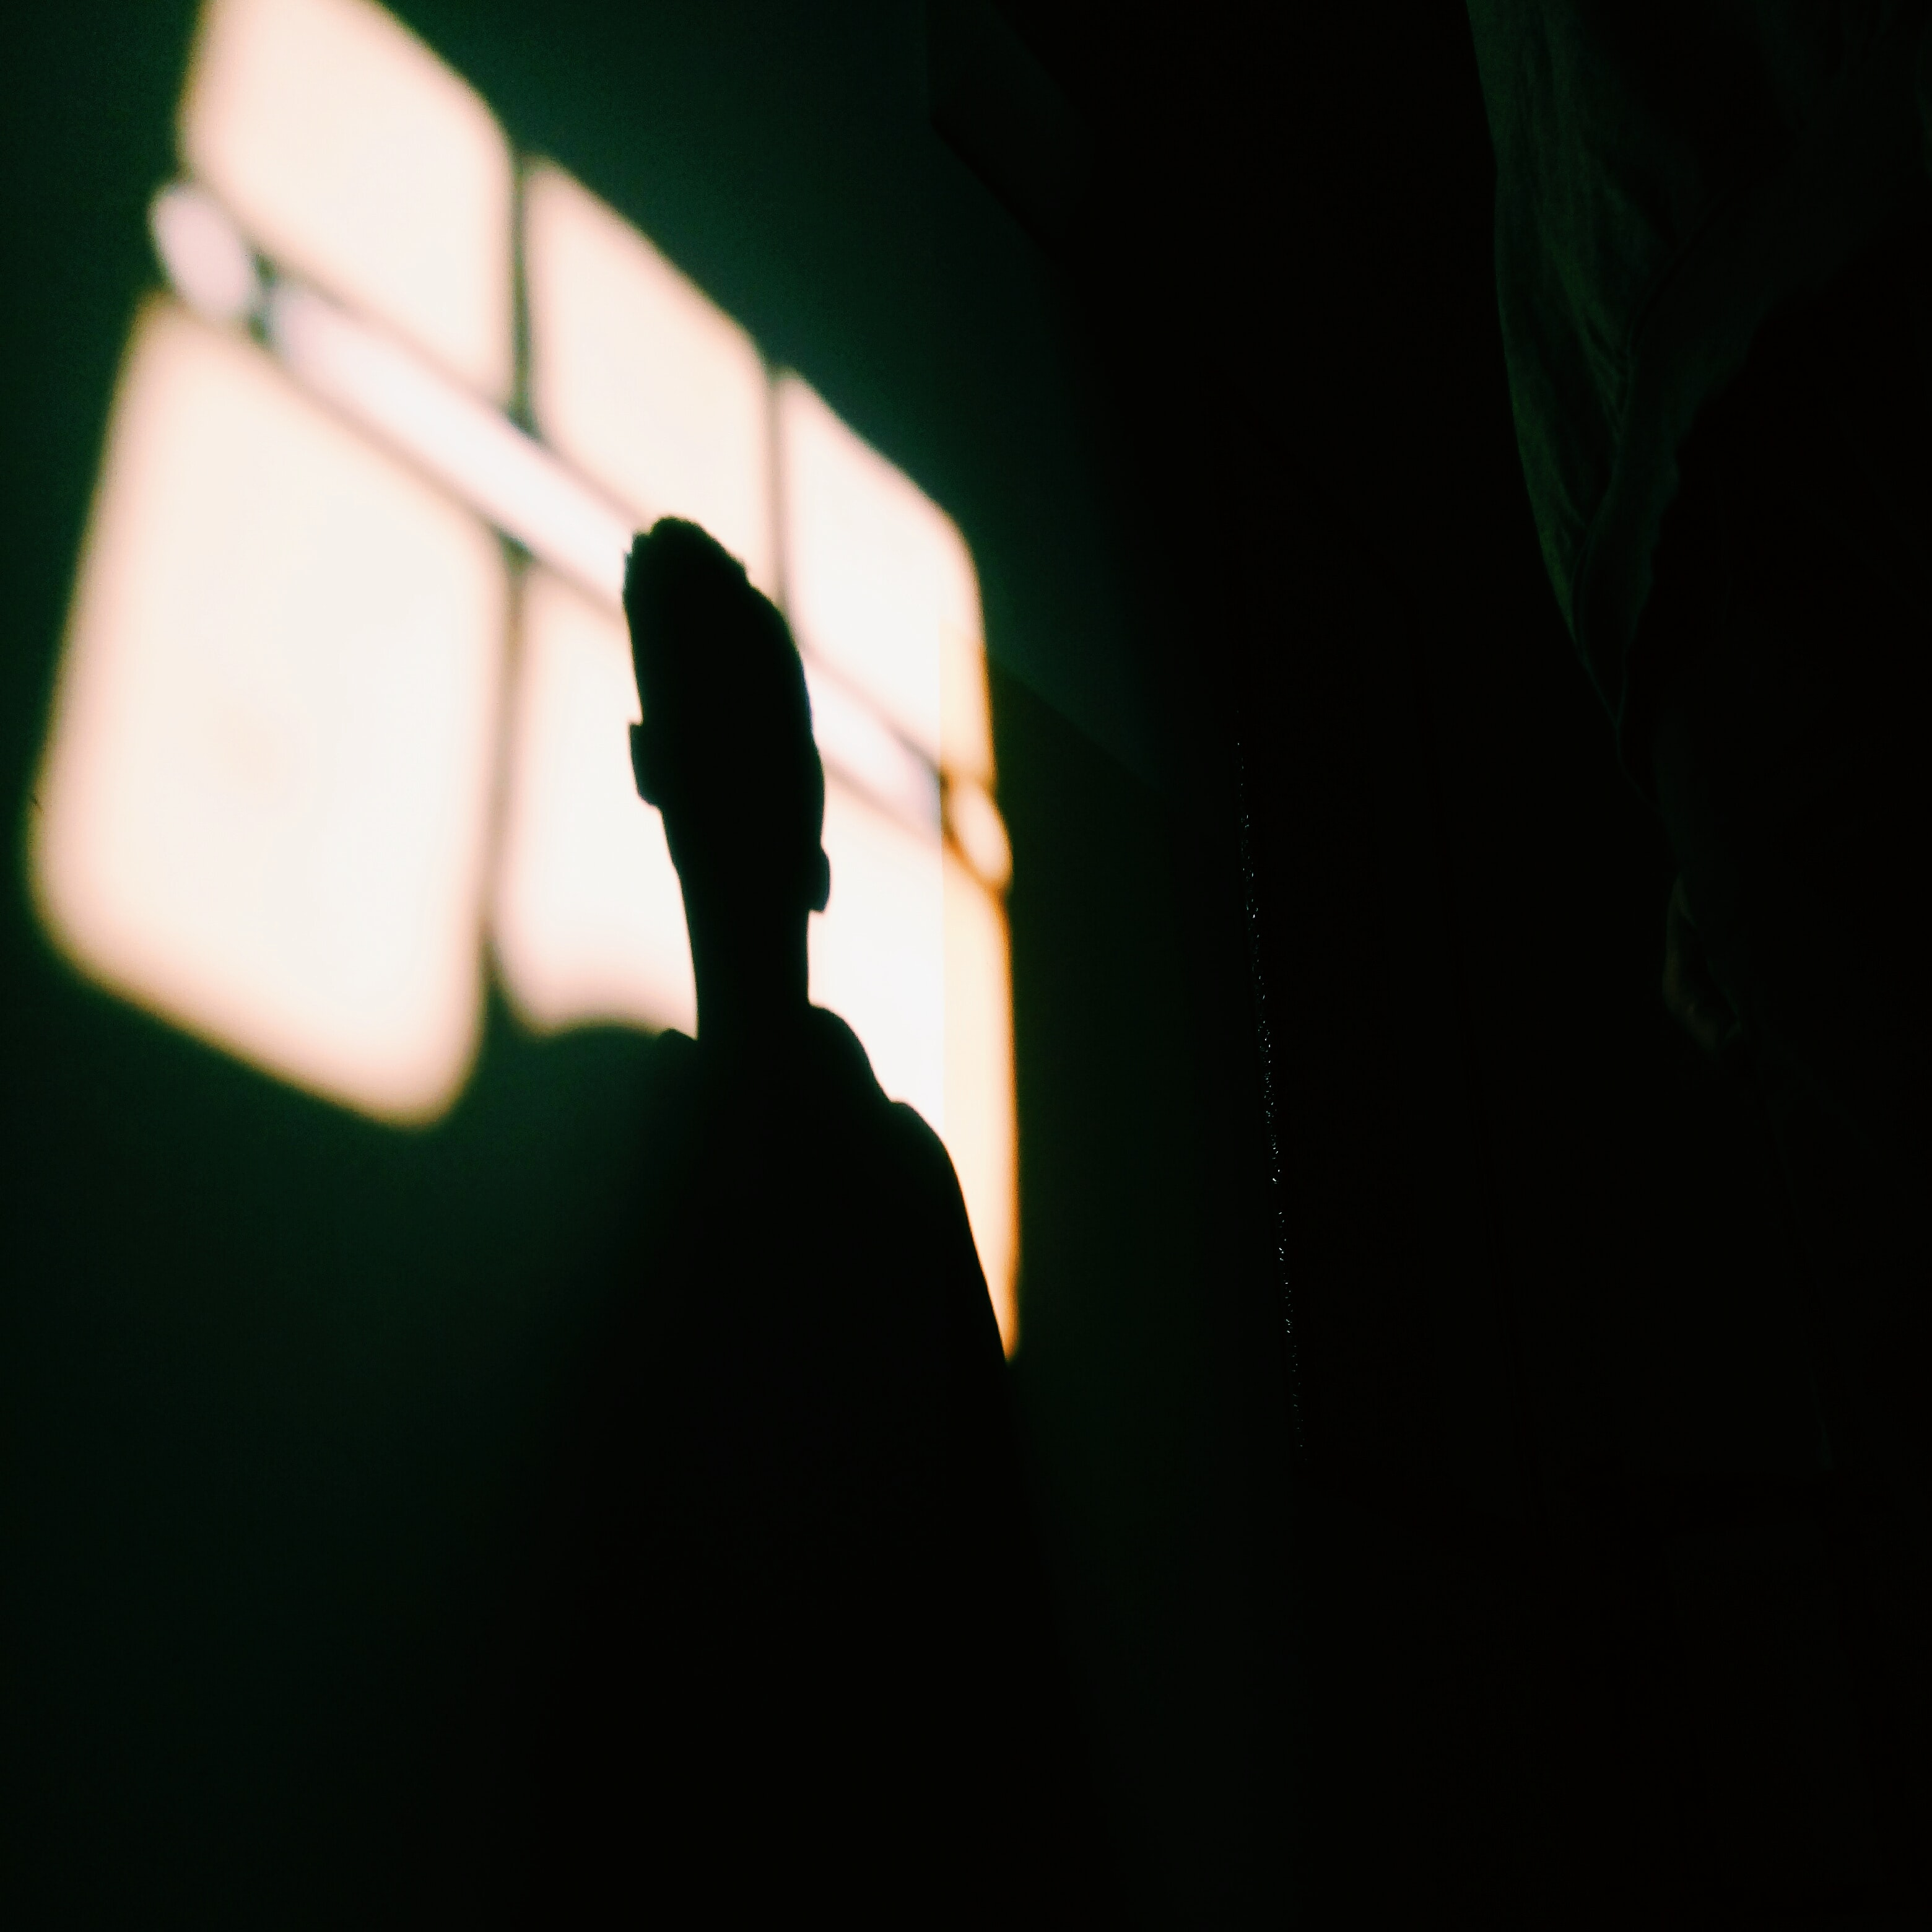 A shadow of a person's face on a bright patch on a dark wall